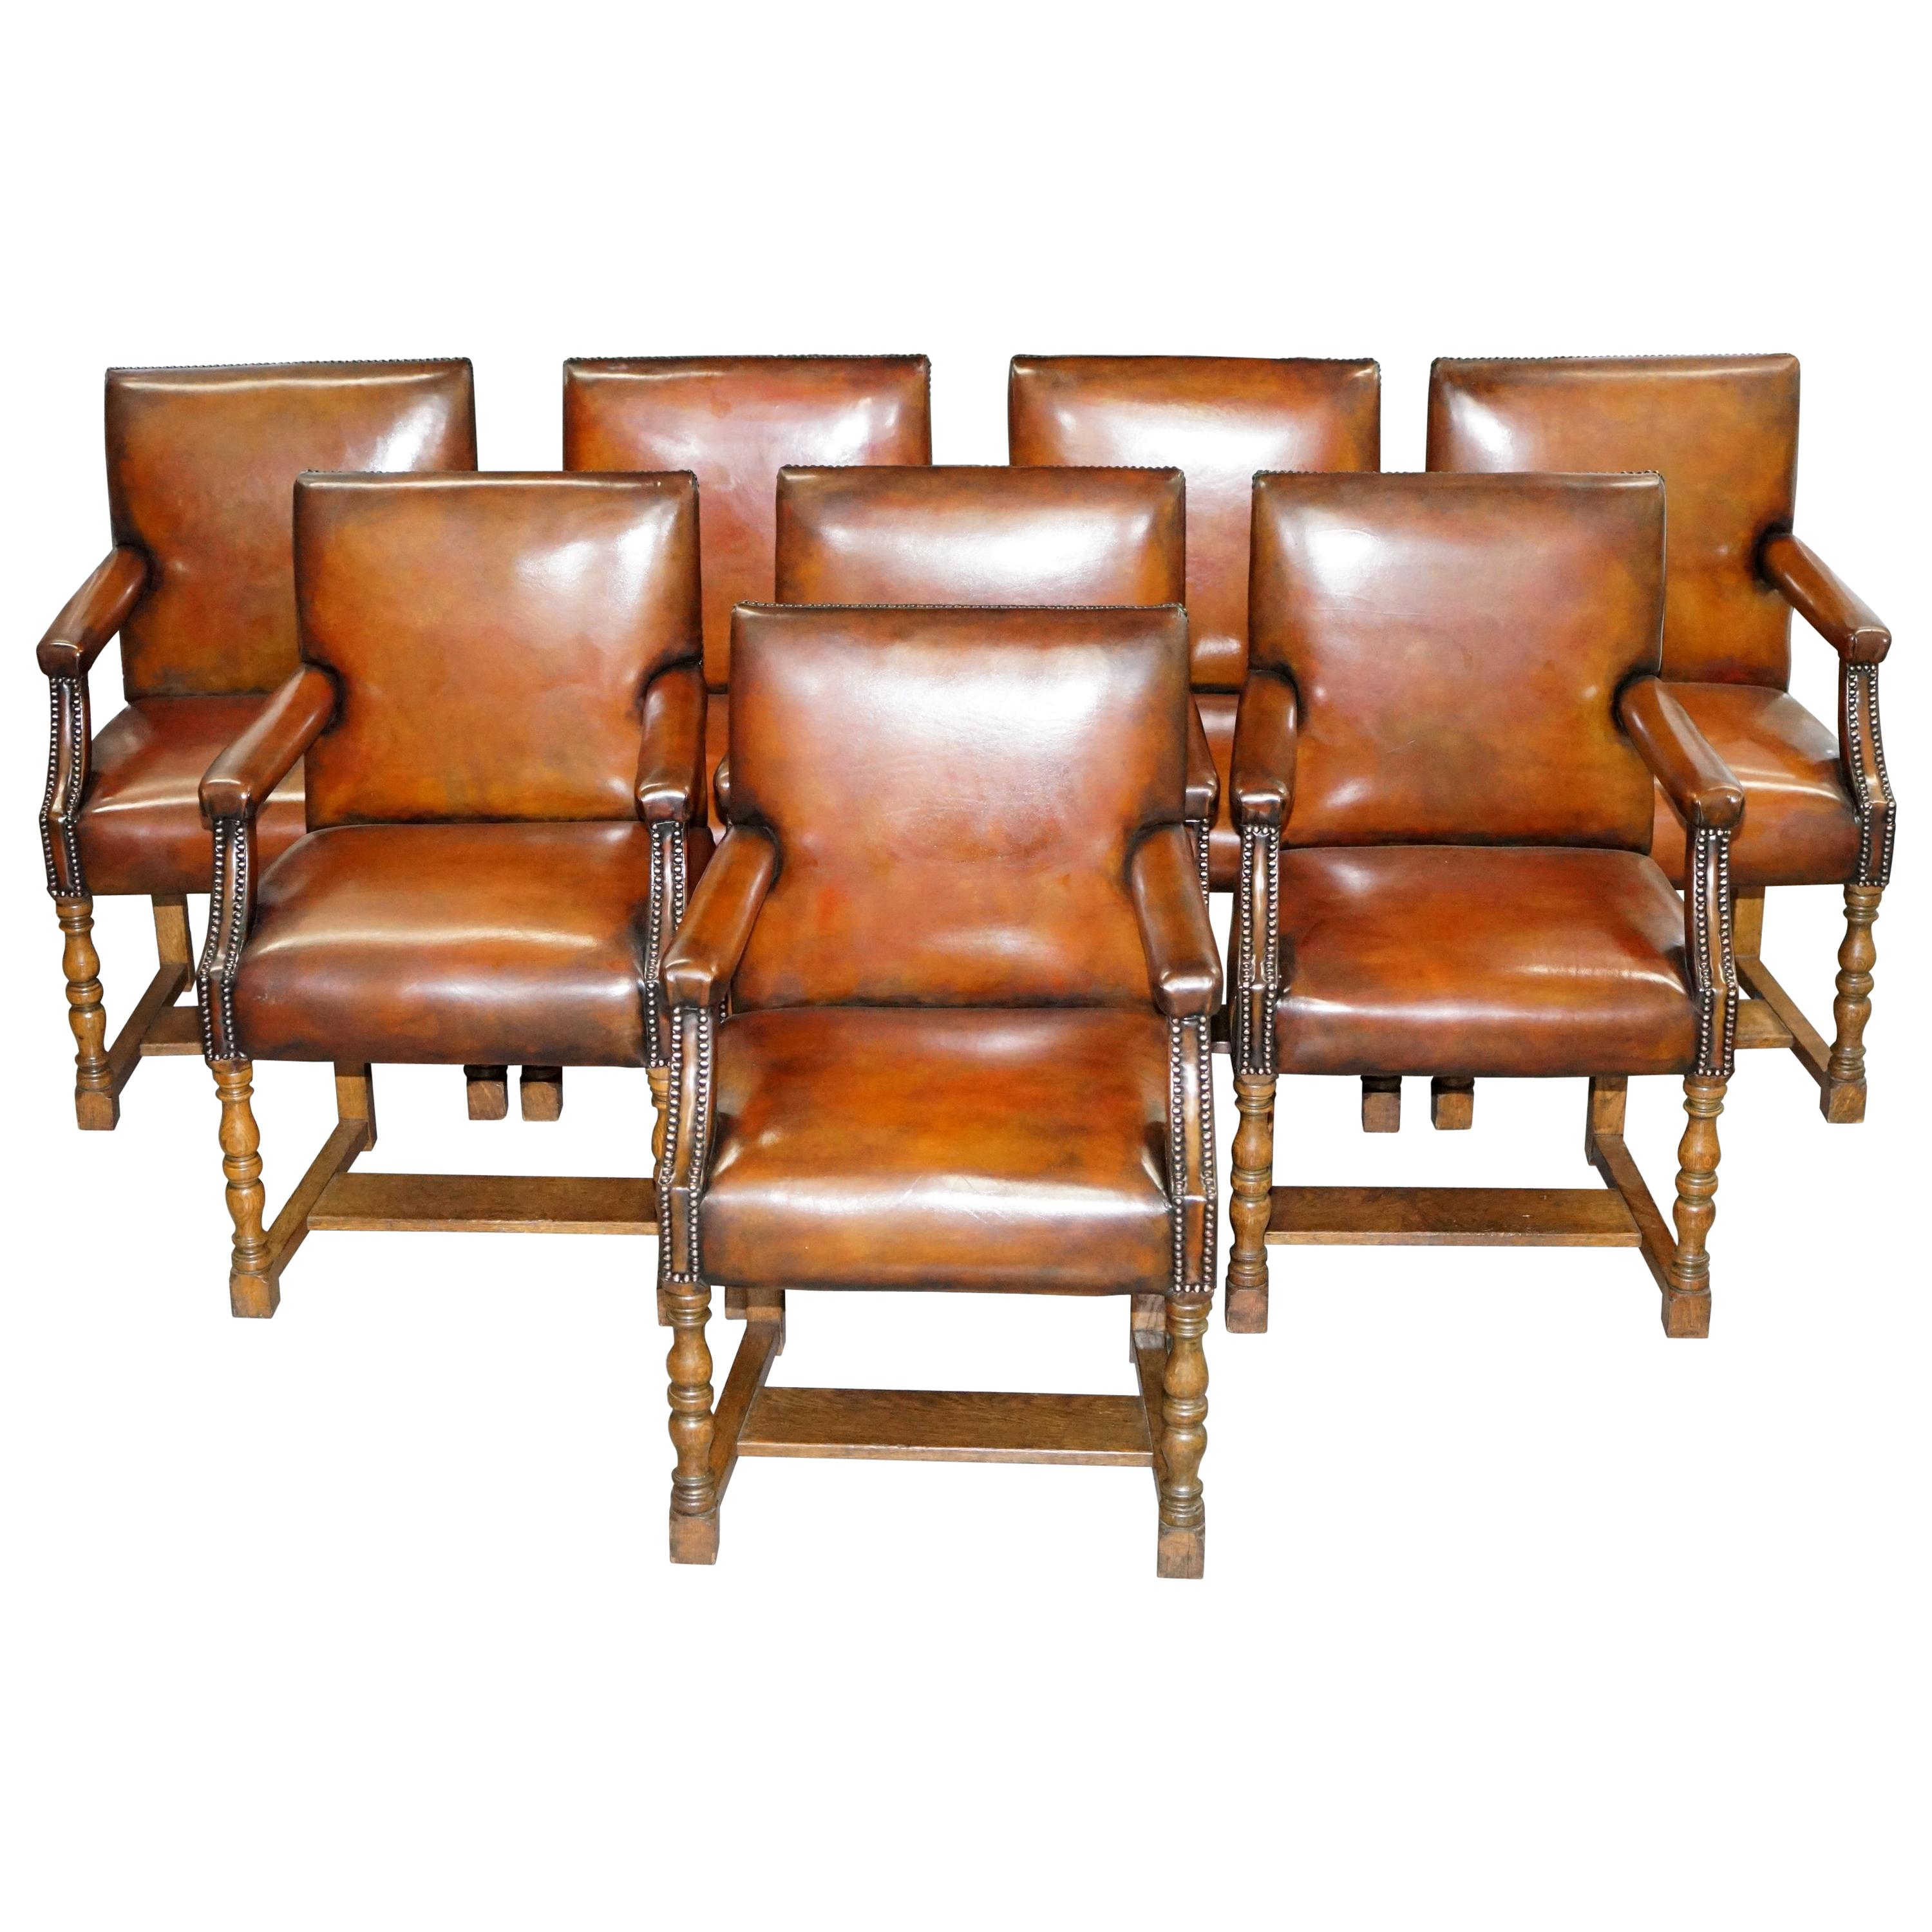 8 Howard & Son's Stamped circa 1900 Brown Leather Carver Gainsborough Armchairs